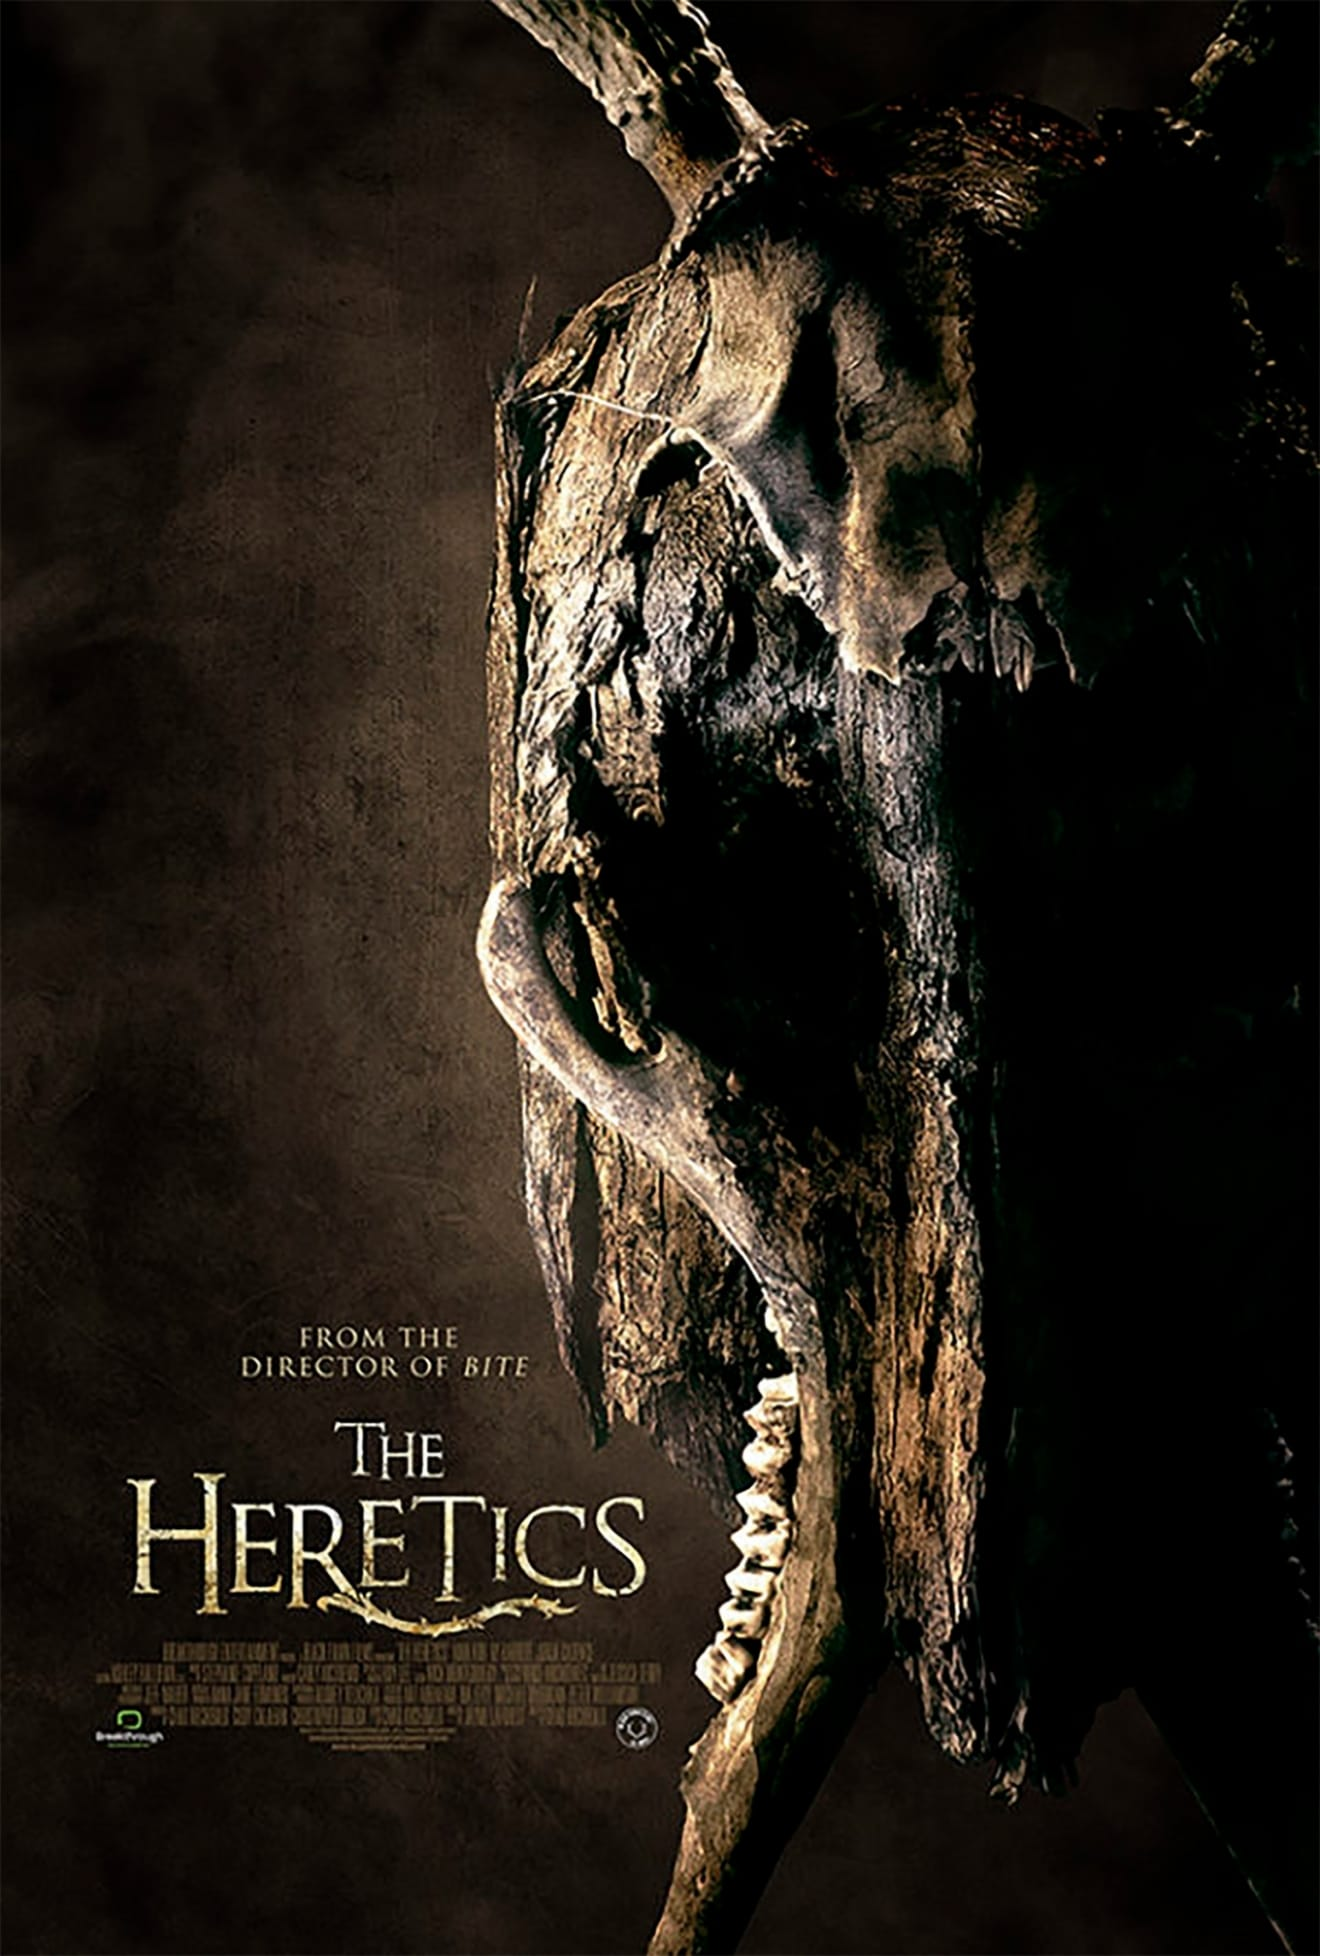 The Heretics official poster